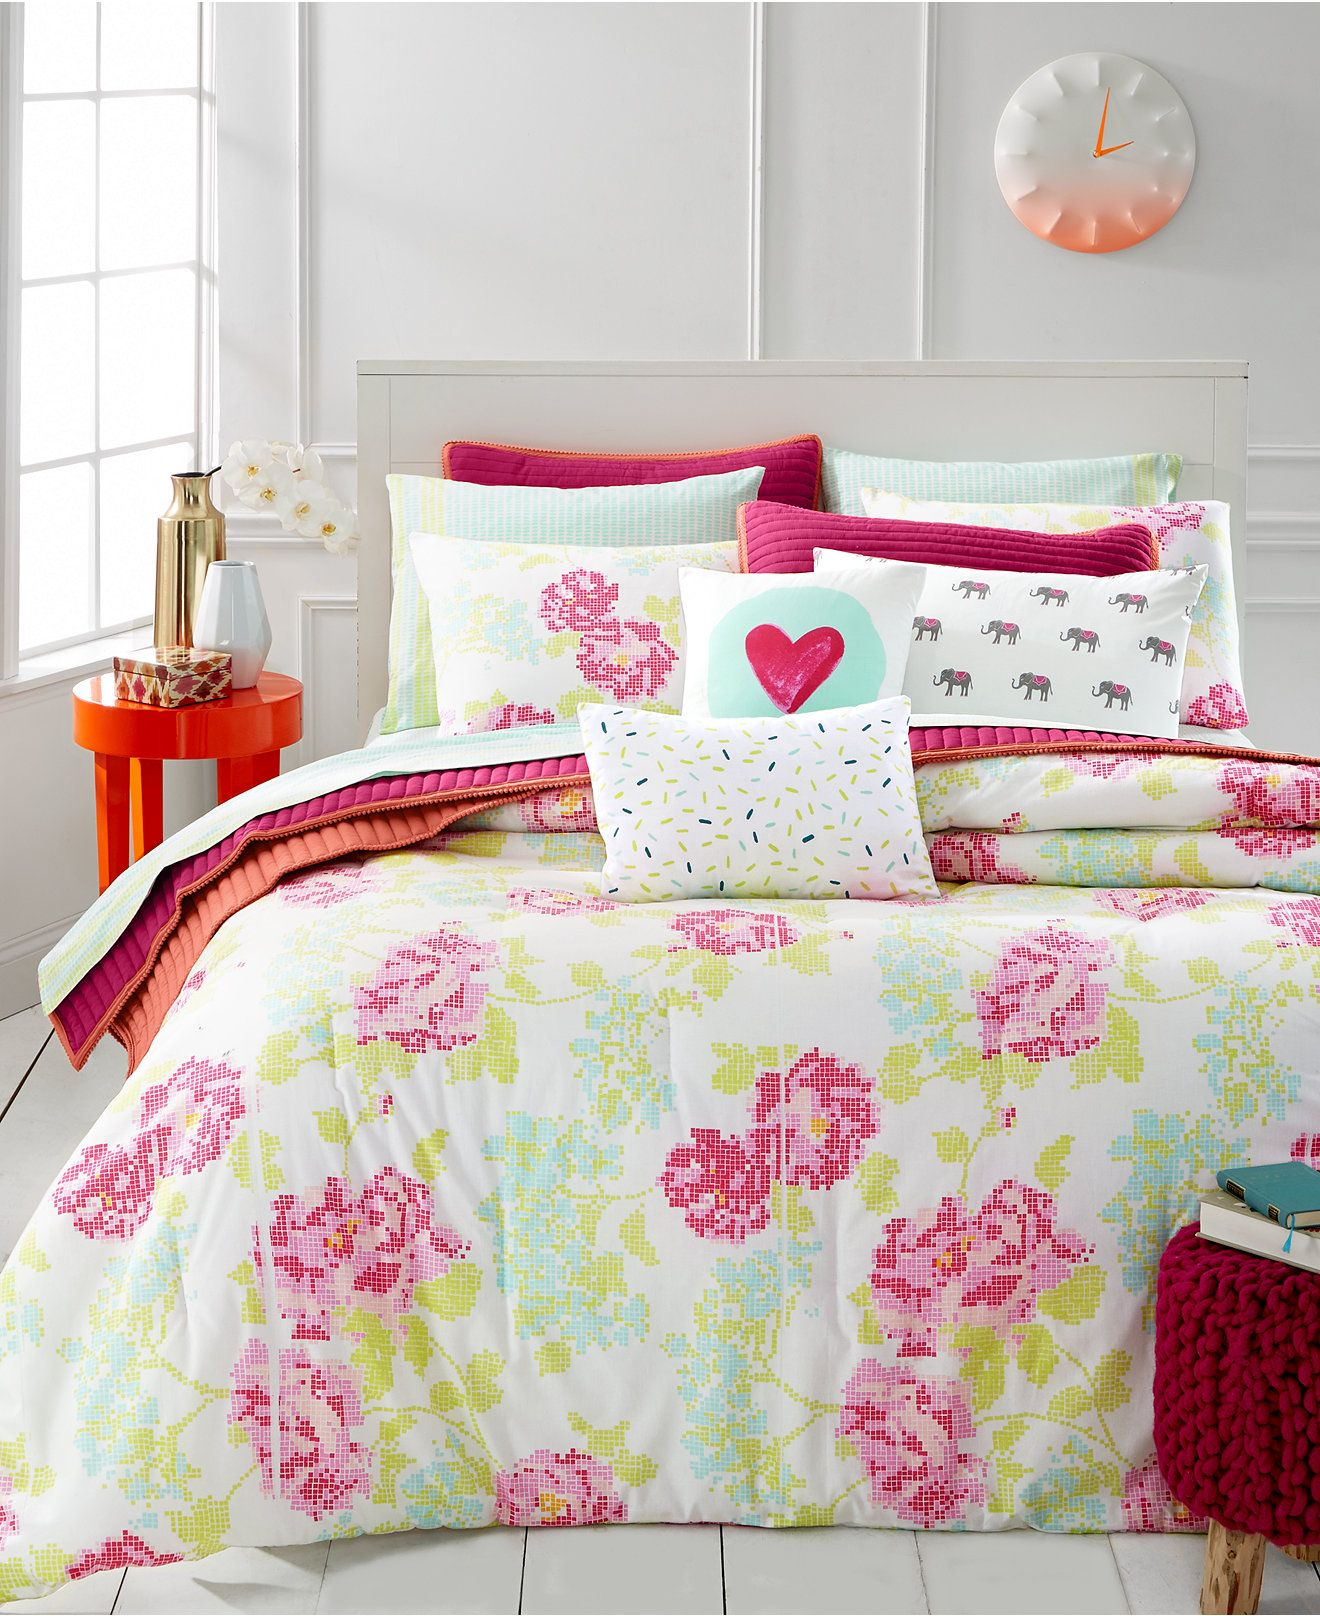 whim by martha stewart pixel perfect bedding collection only at whim by martha stewart pixel perfect bedding collection only at macy s bedding collections